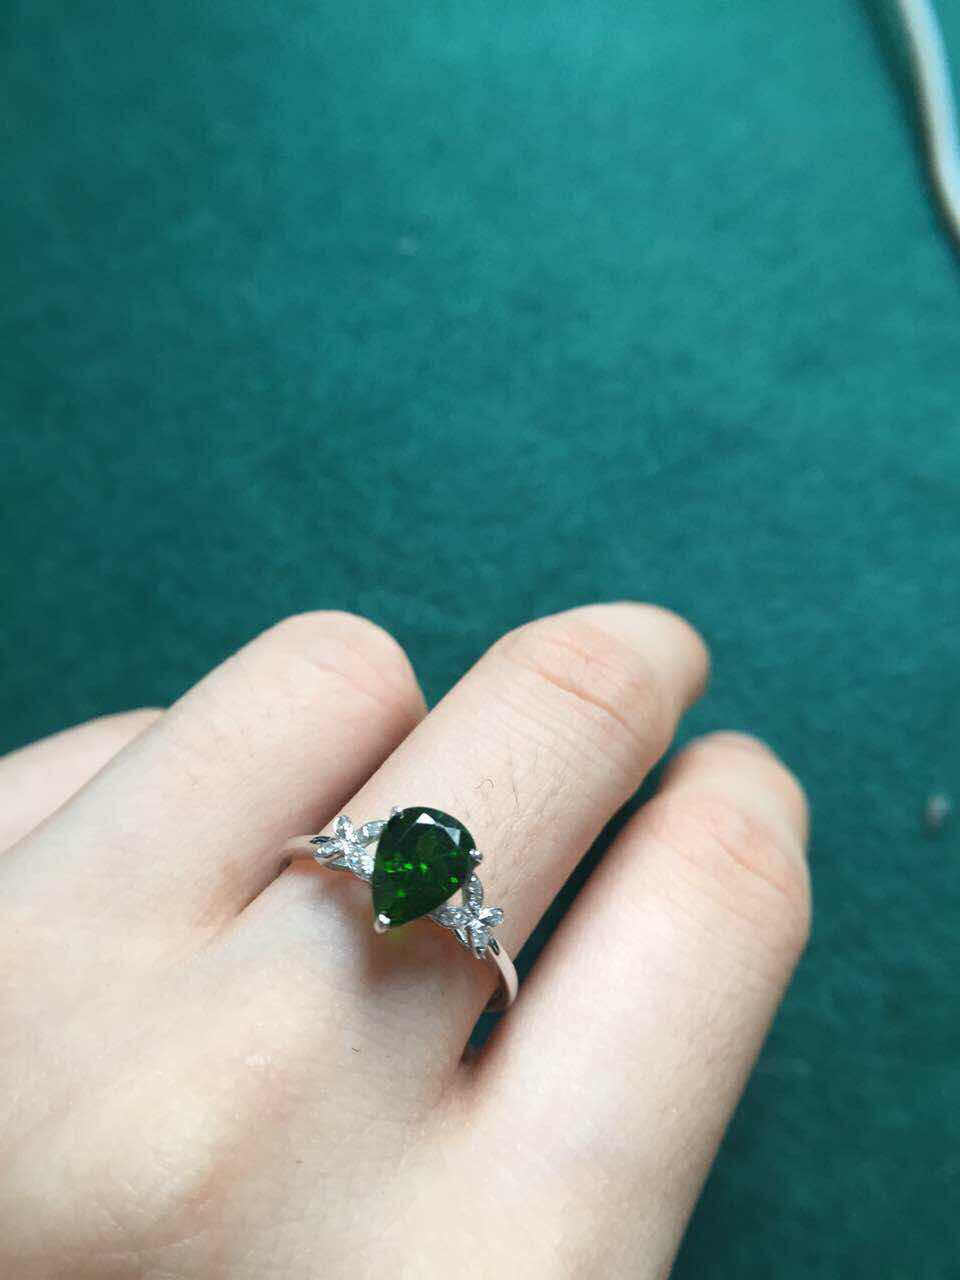 size 6mm*8mm,gold weight 1.48grams 18k gold perfact butterfly kit green tourmaline ring(China (Mainland))